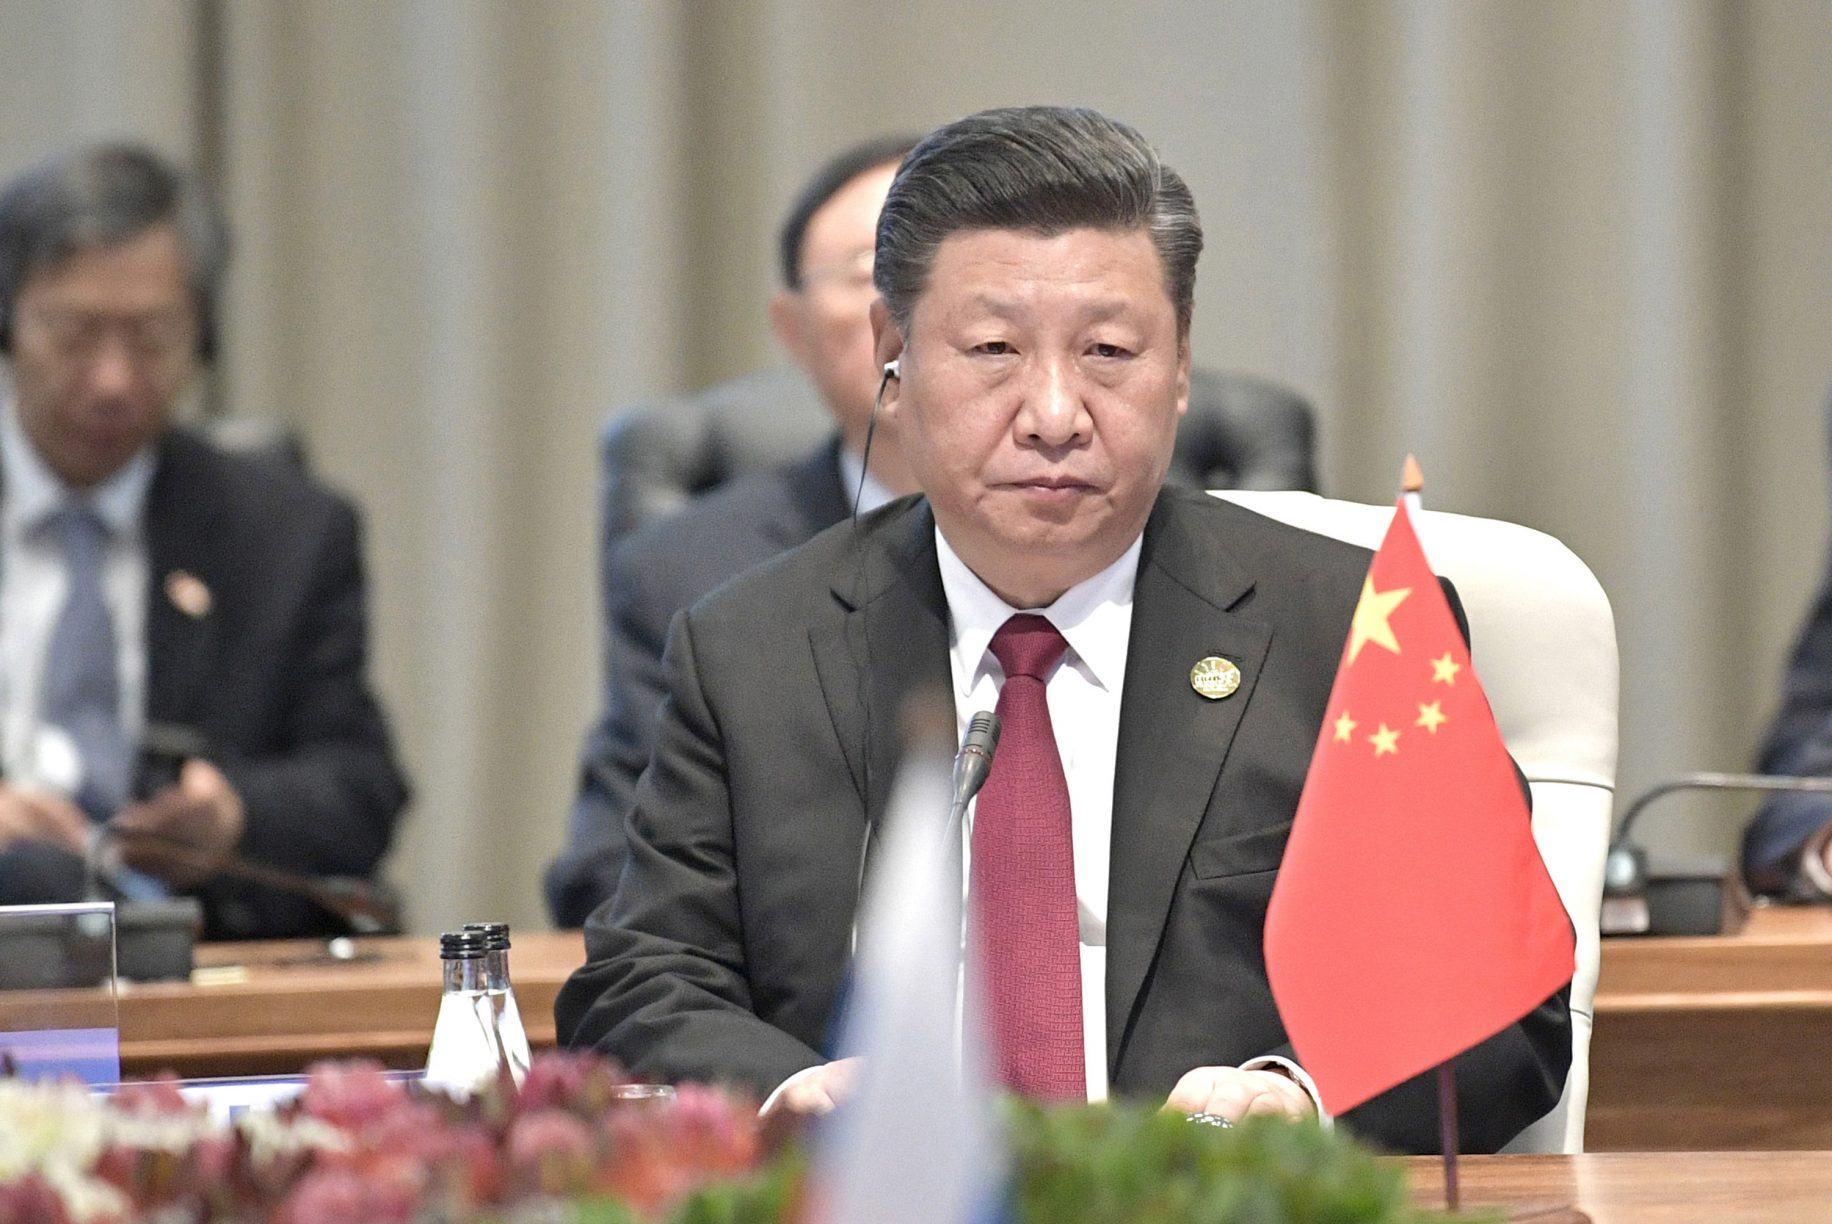 China sends 30 letters to media companies in attempt to control Hong Kong coverage